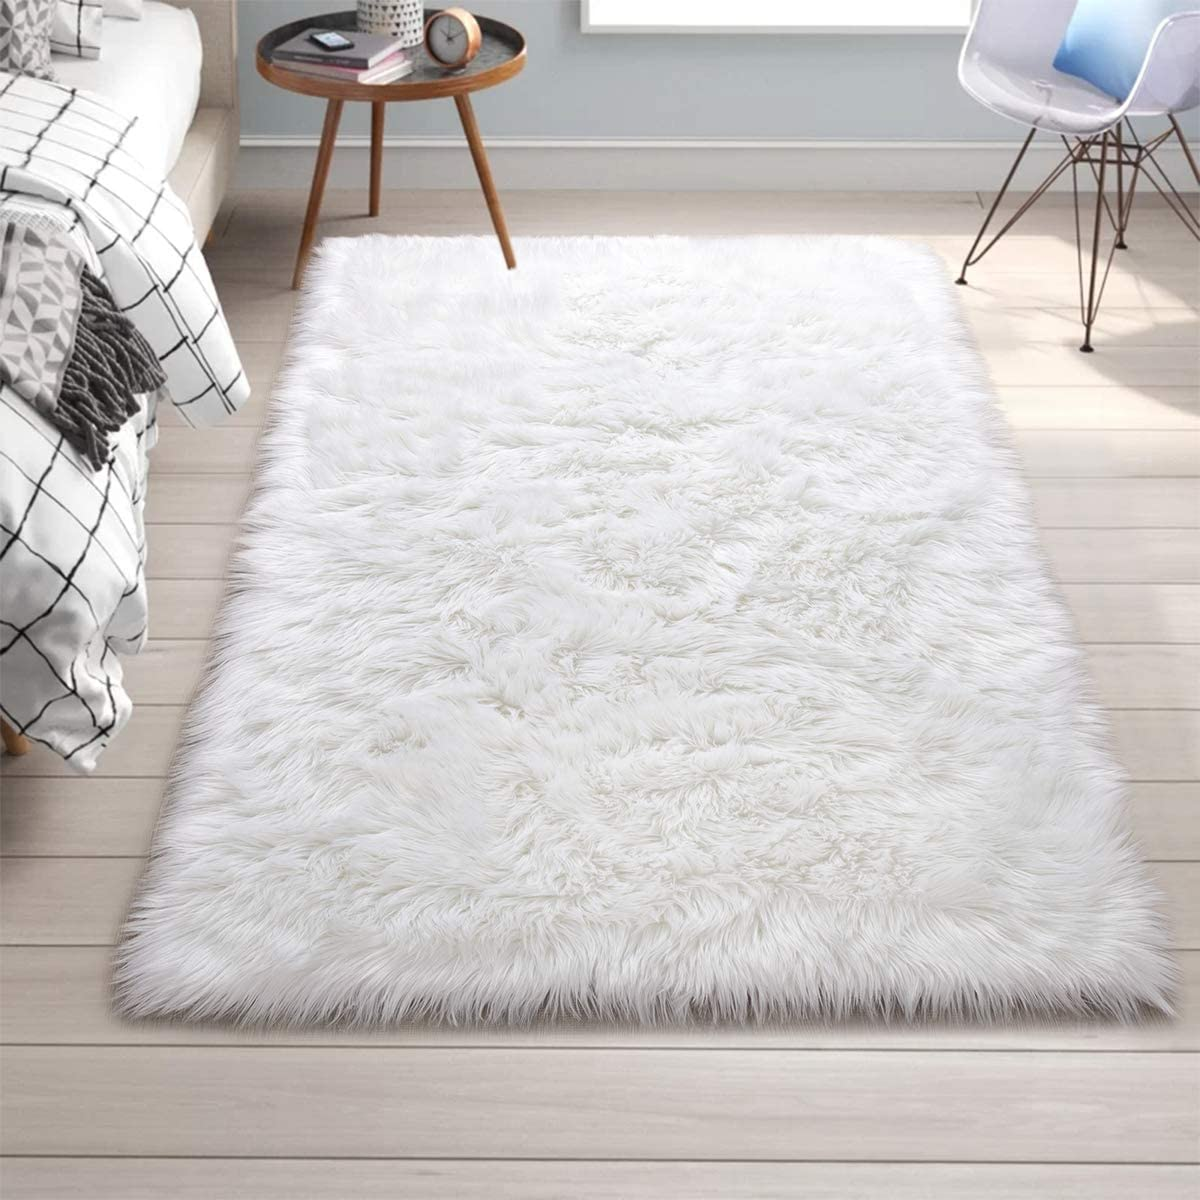 Rectangle Ultra Soft El Paso Mall Fluffy Bedroom Rugs Super Special SALE held Sheepsk Luxury Fur Faux